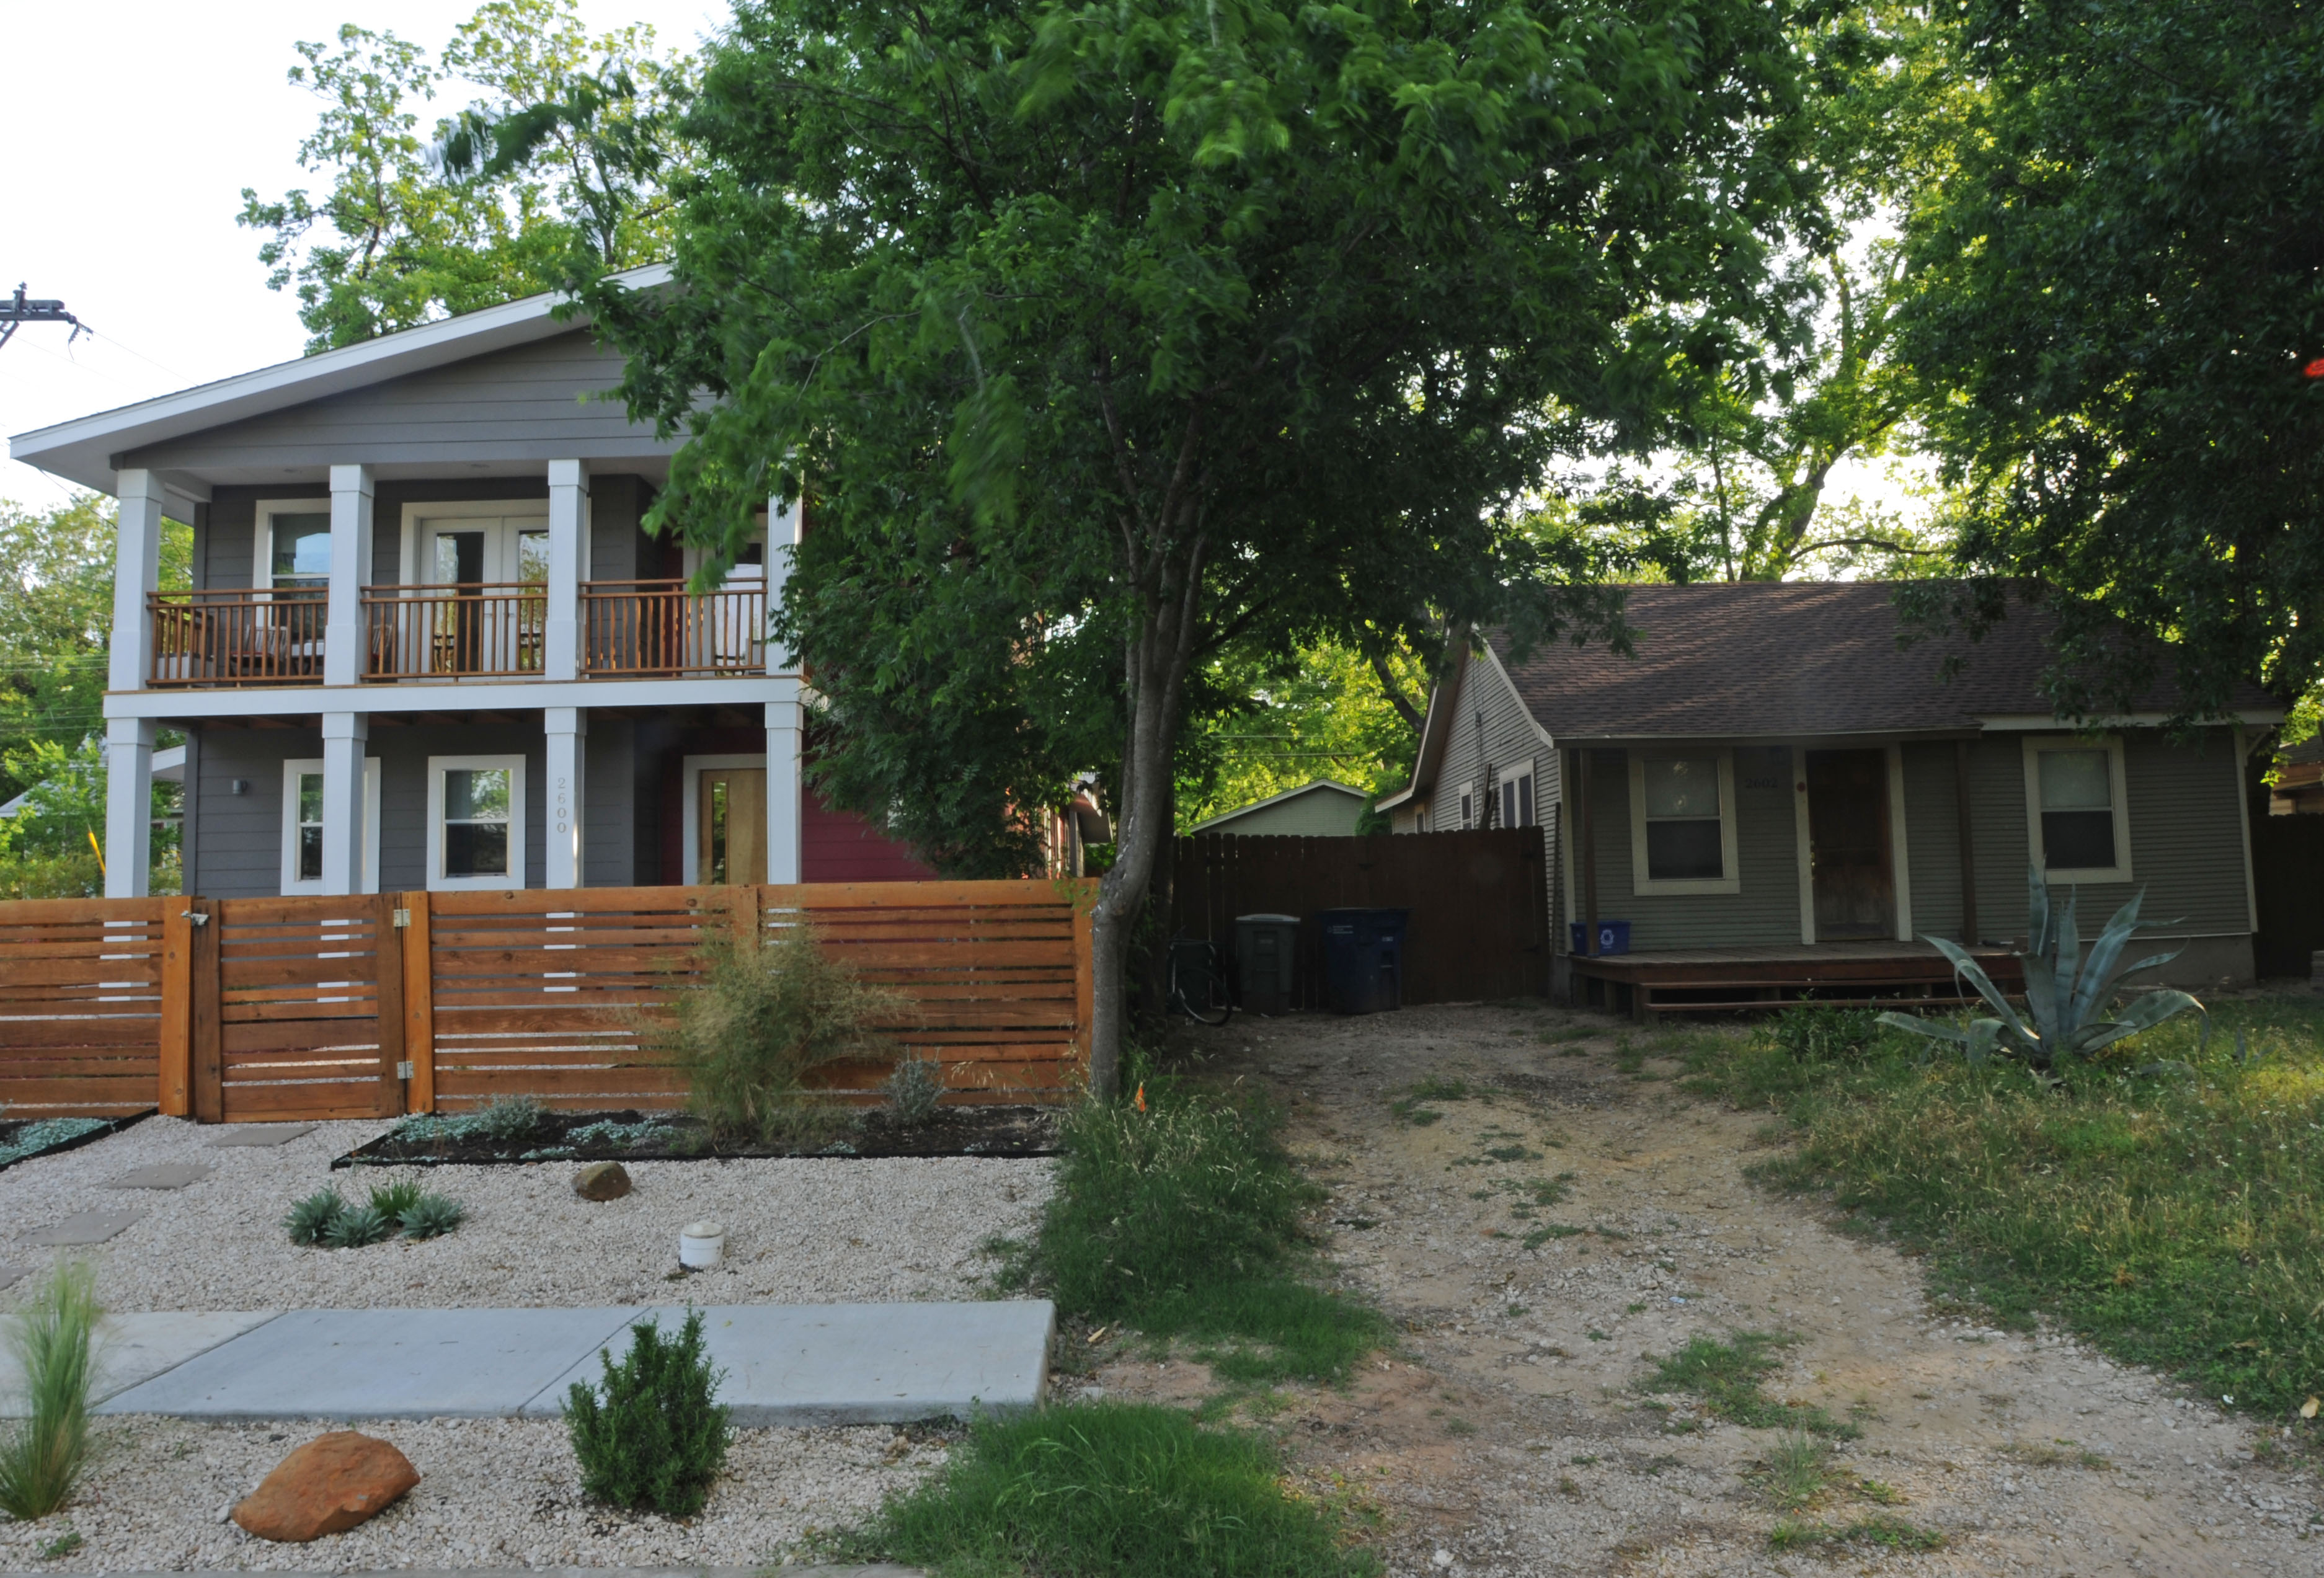 Housing the Working Class in Austin